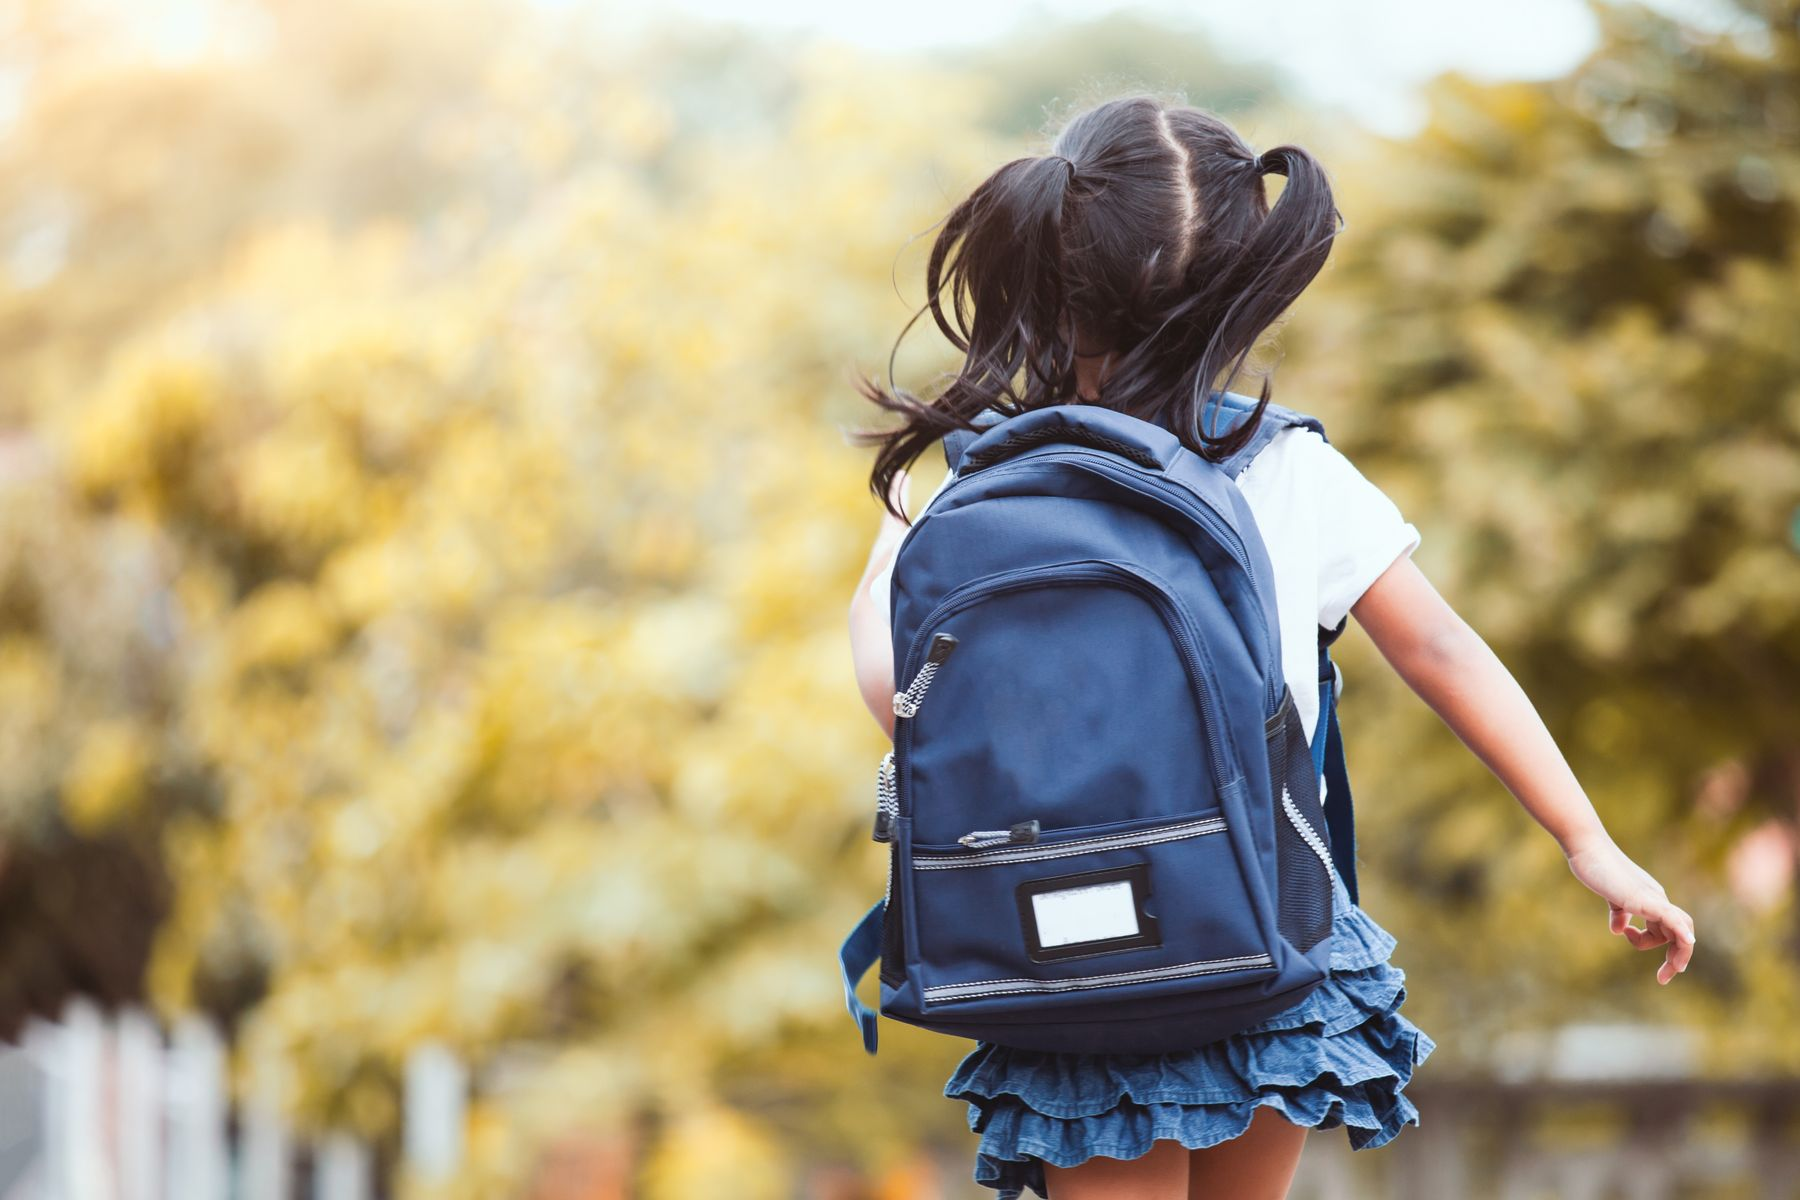 How to Get Your Kid's School Uniform and Bag Ready for their New Year shutterstock 1155516358